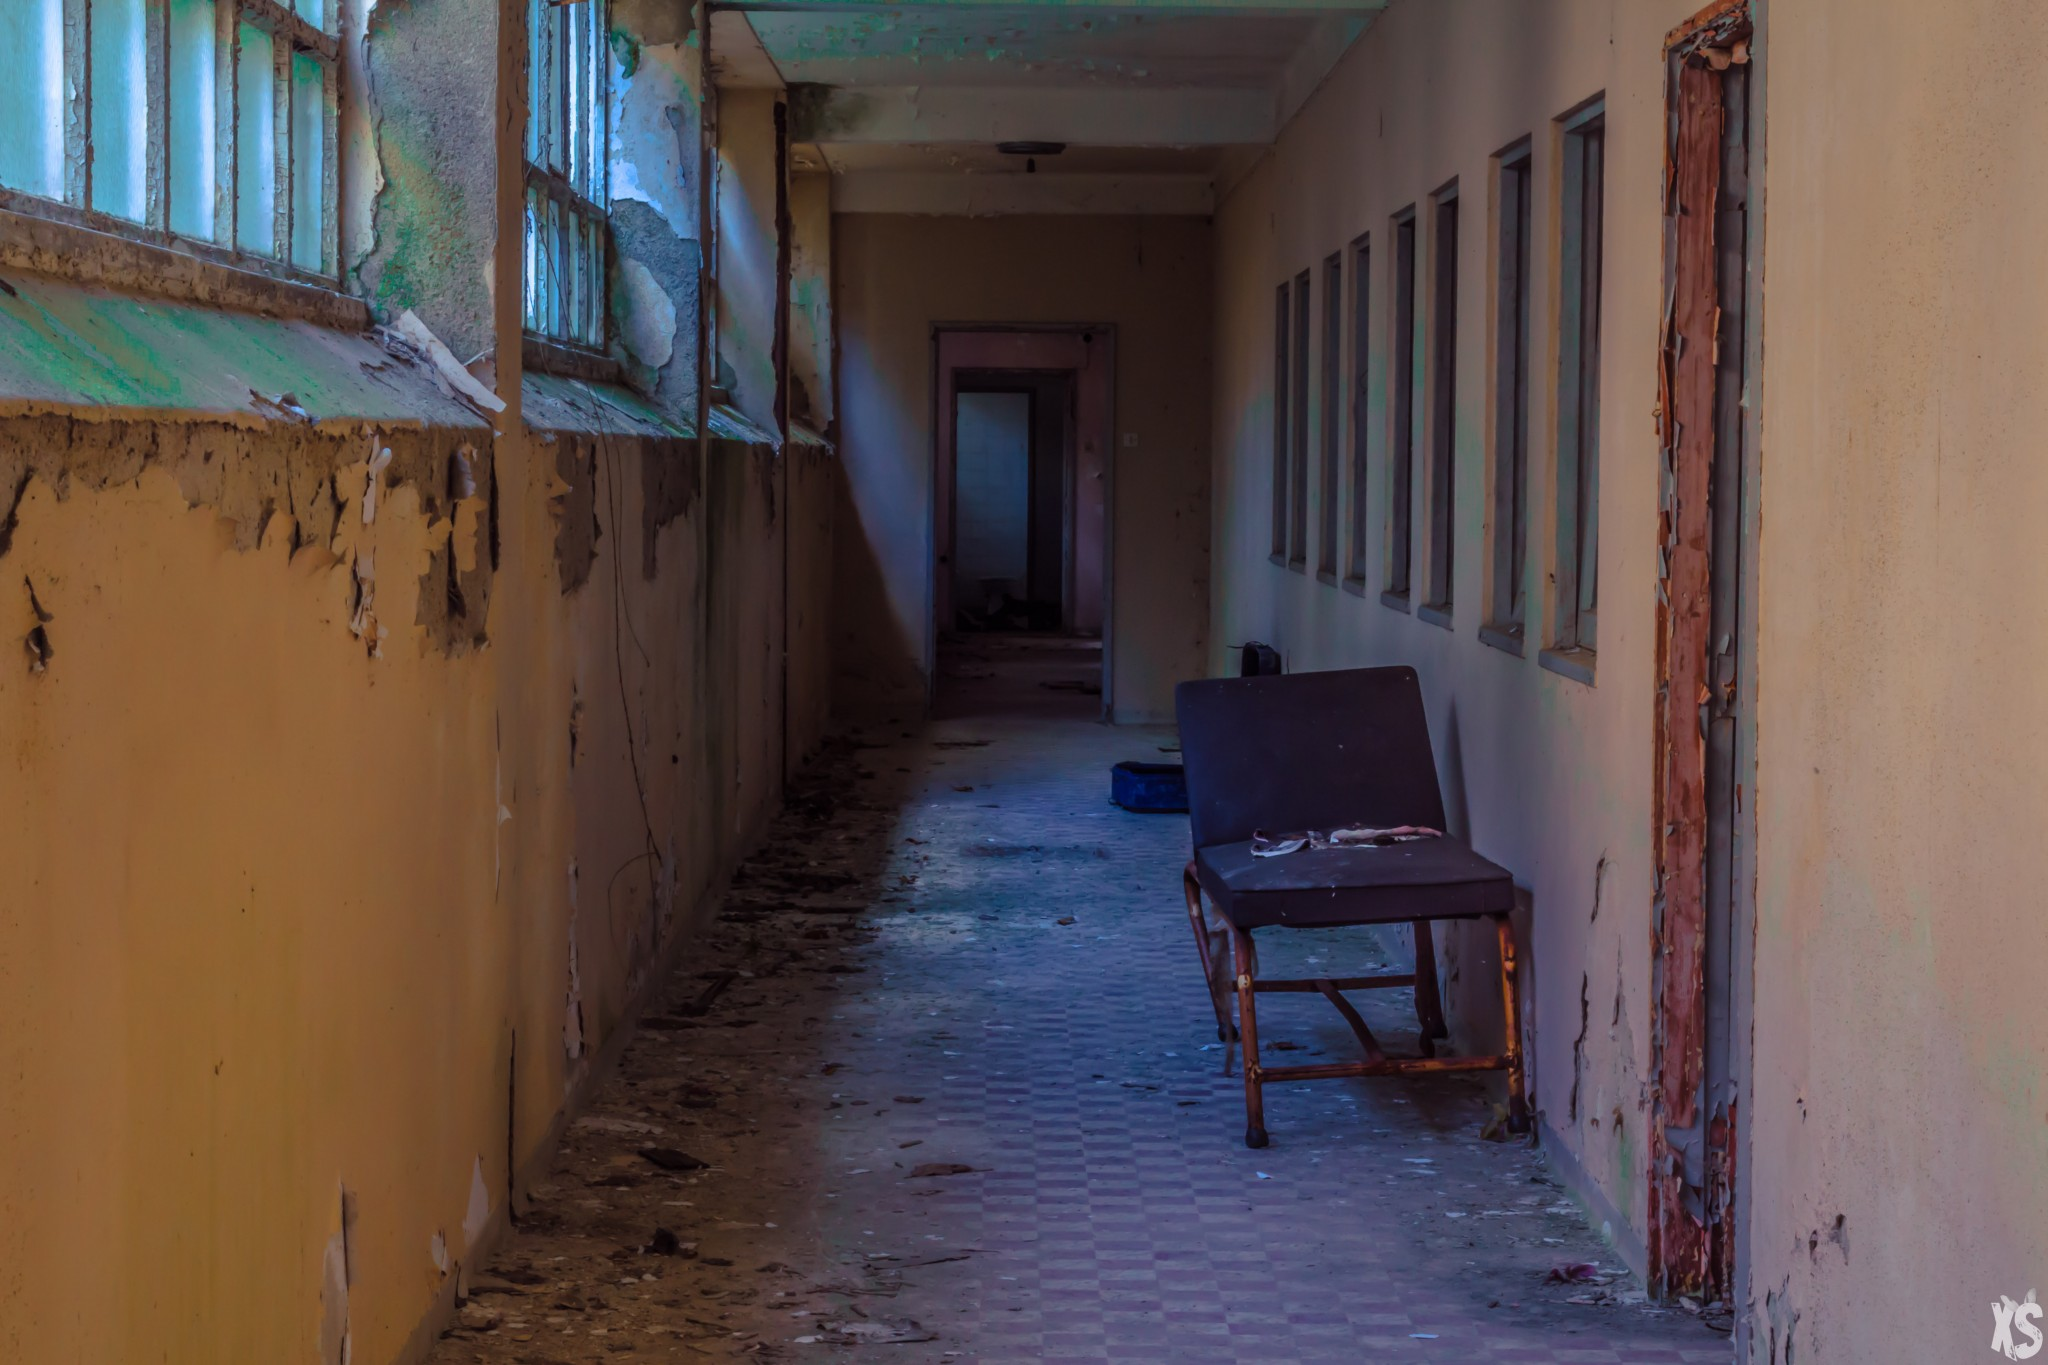 Abandoned Asylum in Portugal - Urbex